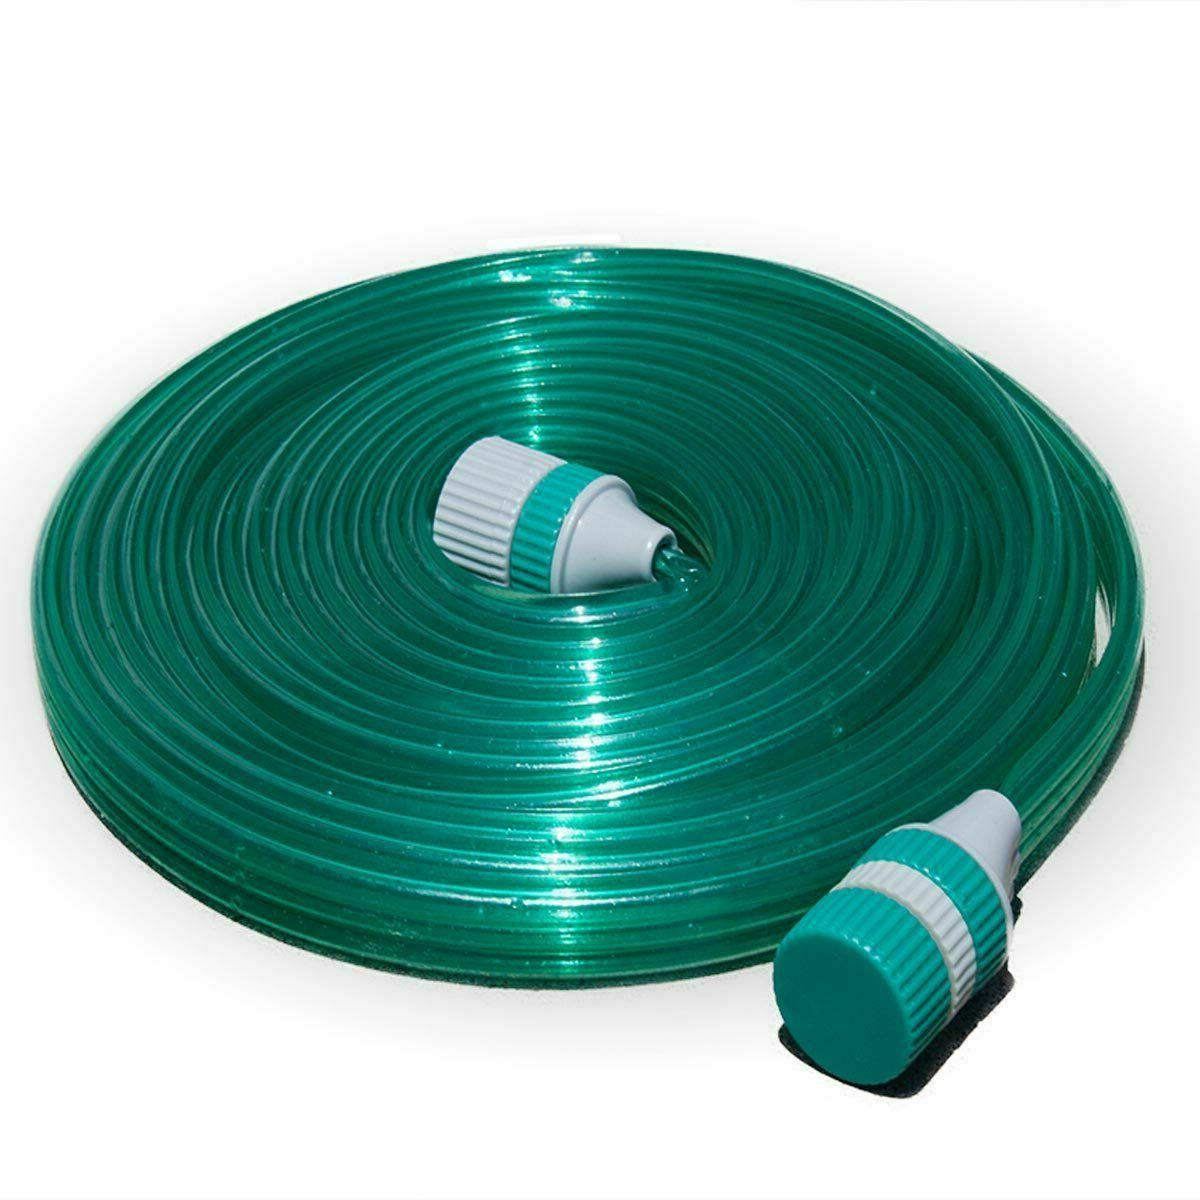 20 replacement misting hose for inflatable water